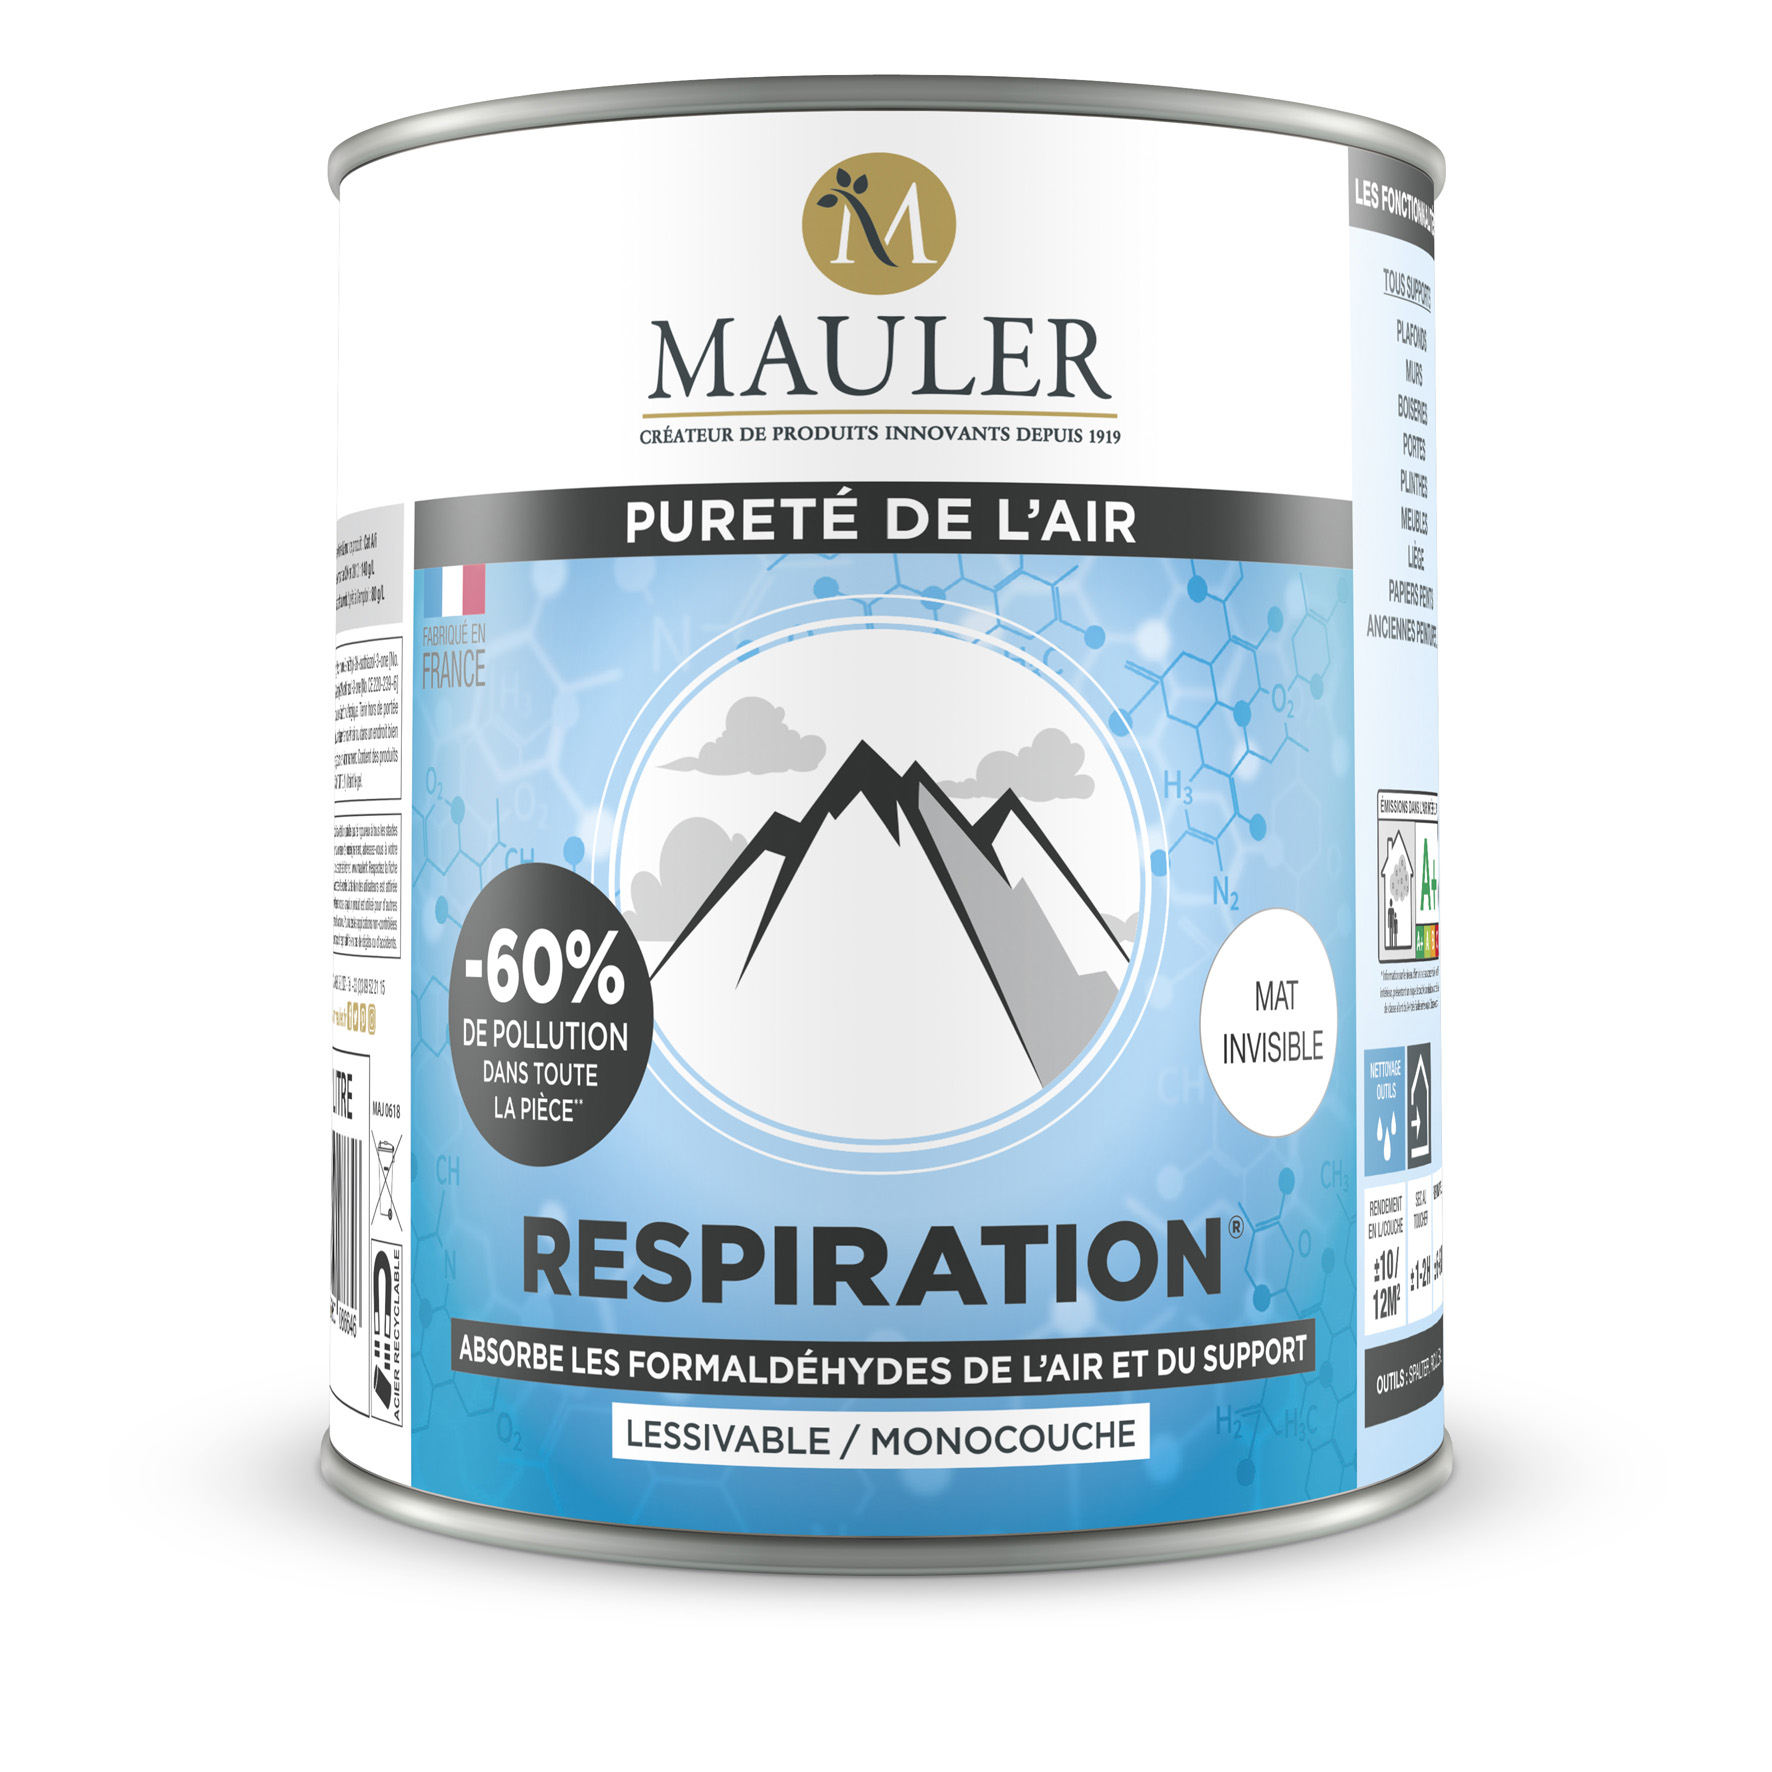 Respiration by Mauler